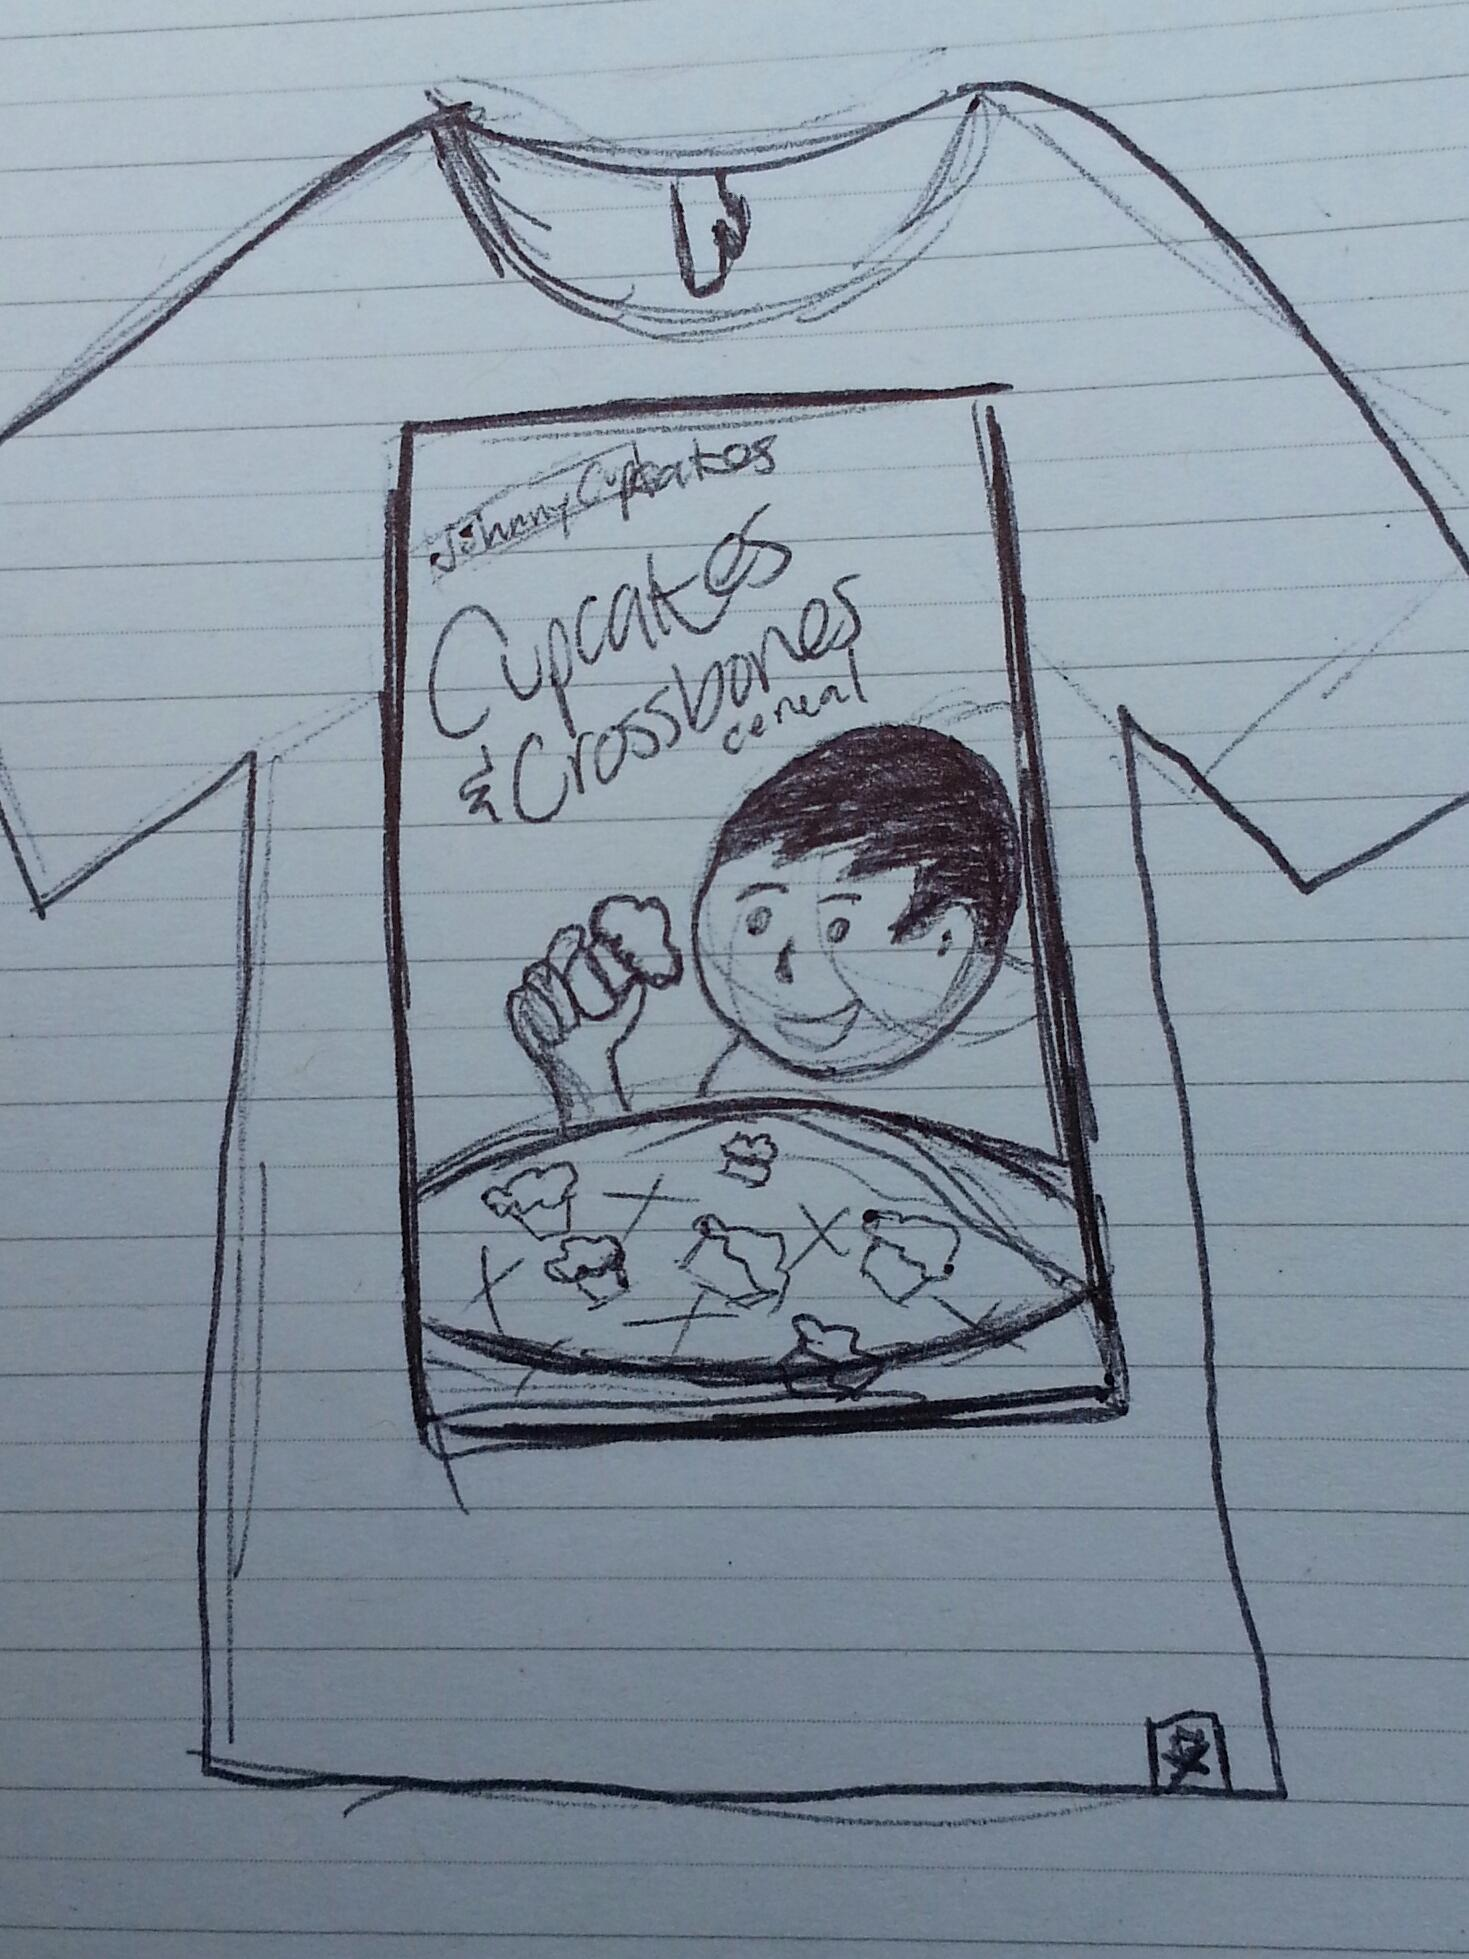 Johnny Cupcakes Cereal Brand - image 4 - student project